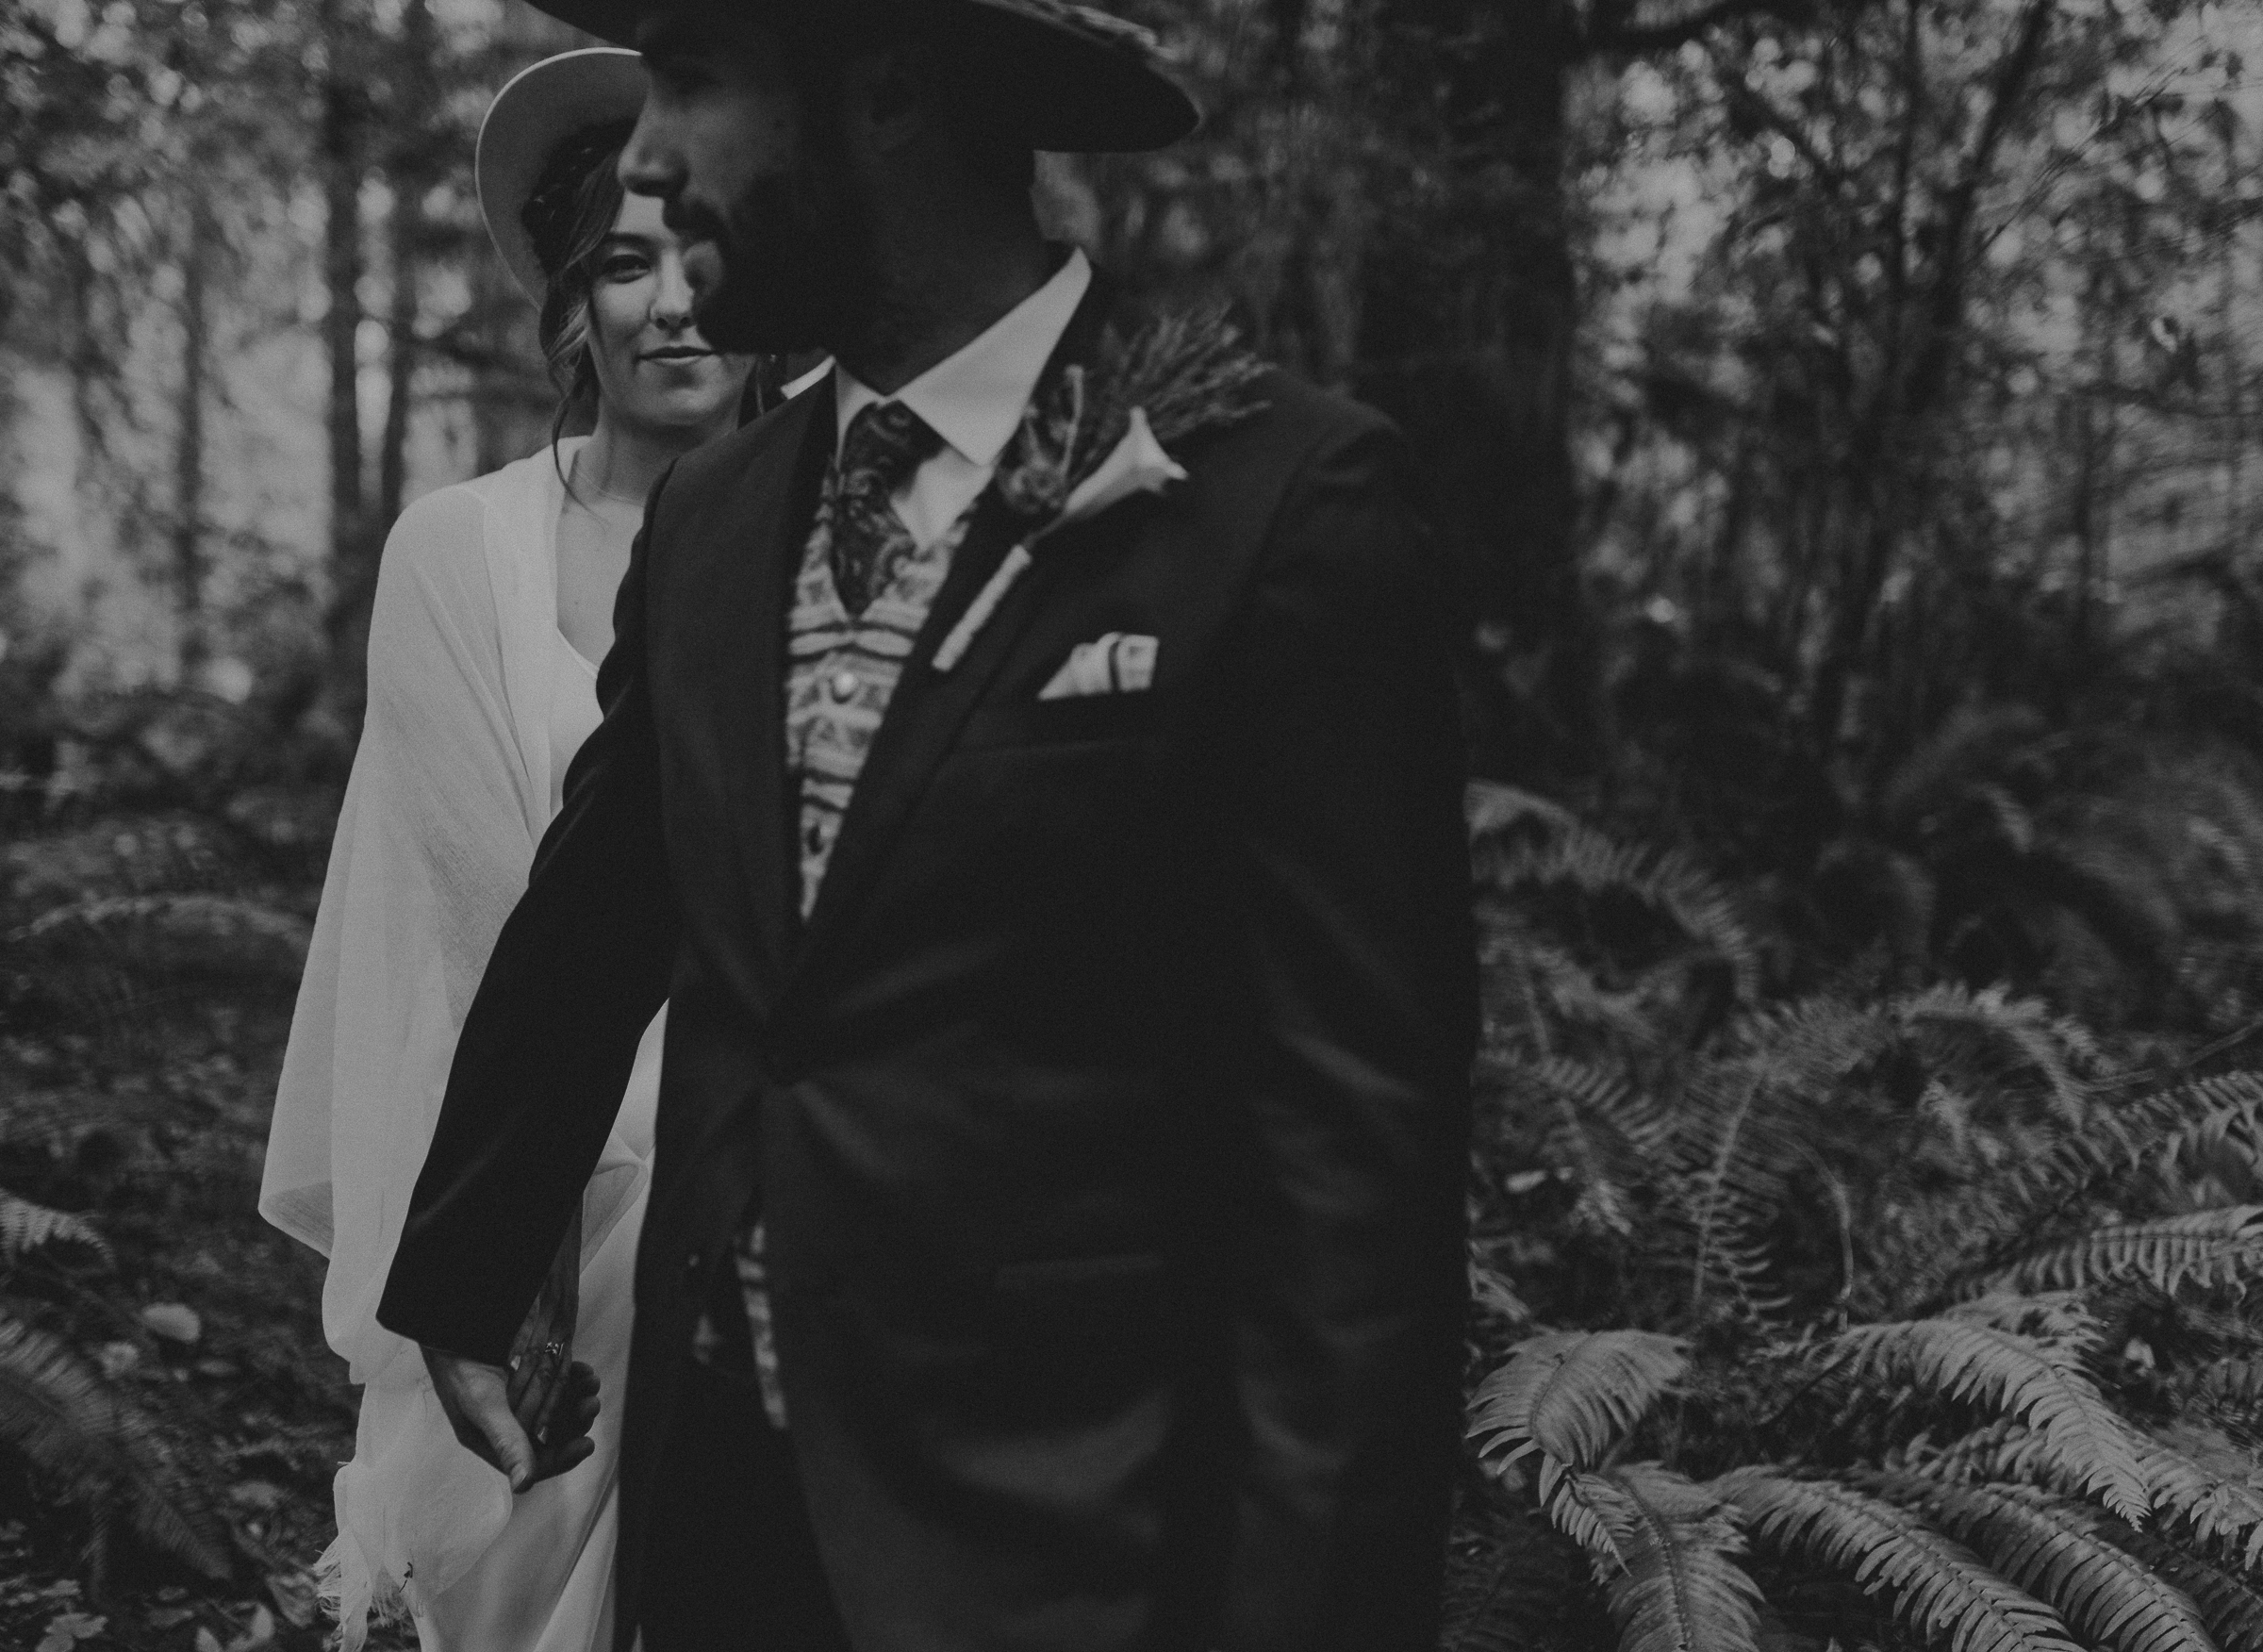 Isaiah + Taylor Photography - Camp Colton Wedding, Los Angeles Wedding Photographer-099.jpg